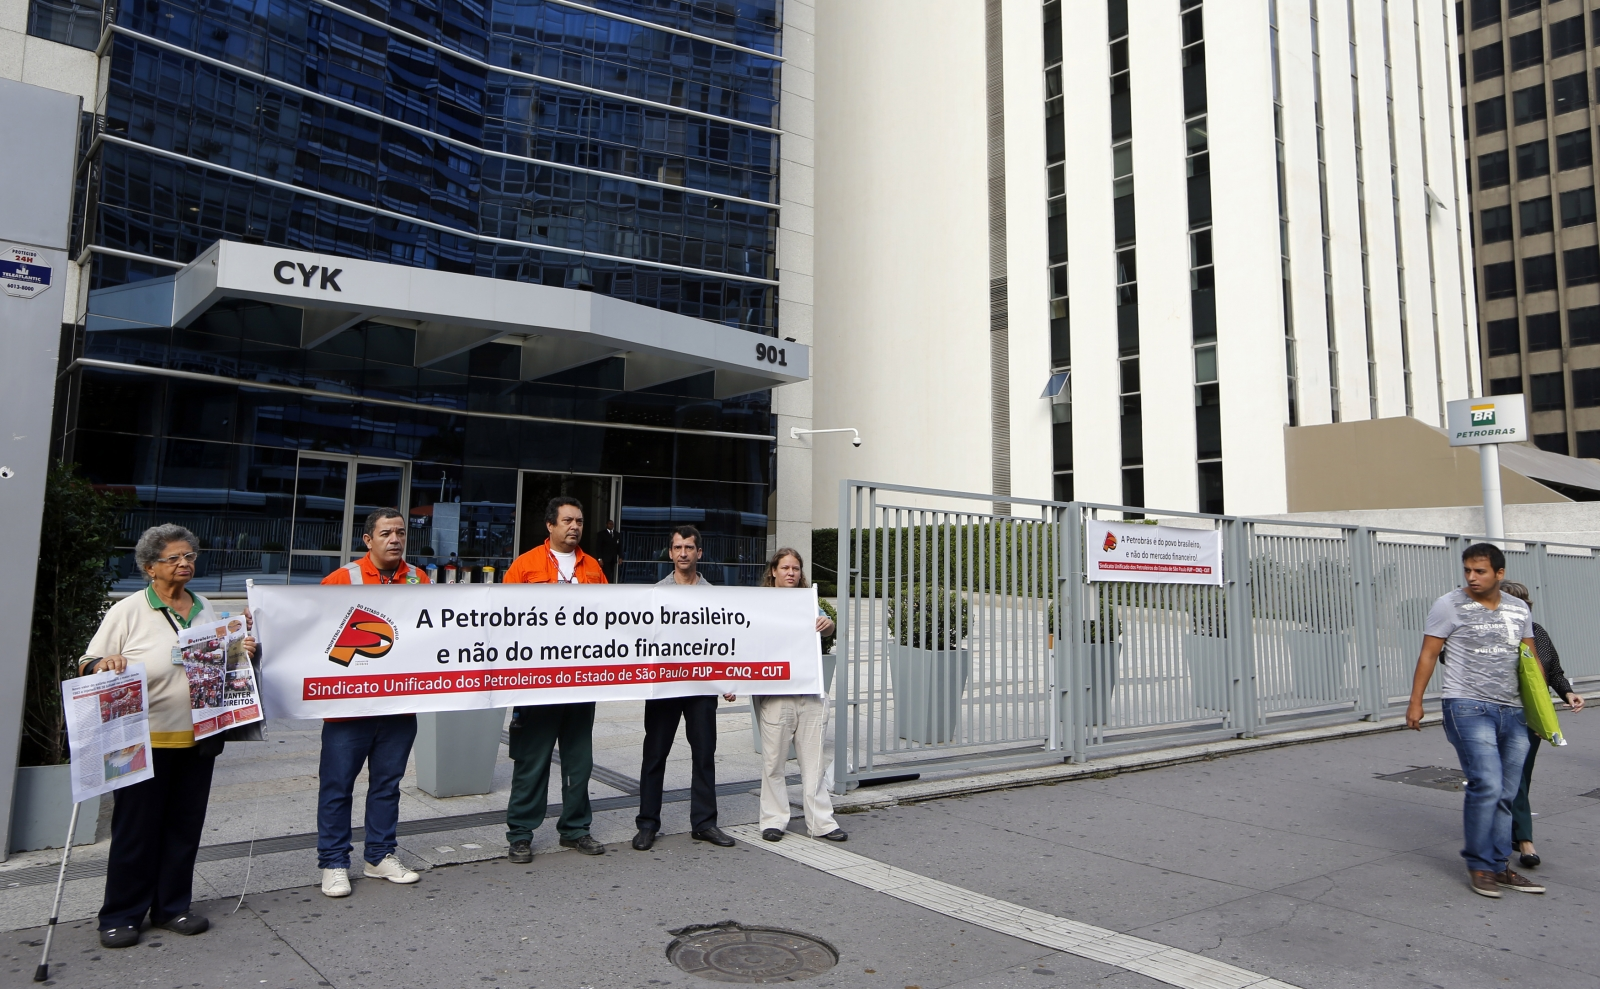 Petrobras' workers hold a banner in front of the Petrobras headquarters in Sao Paulo February 6, 2015.